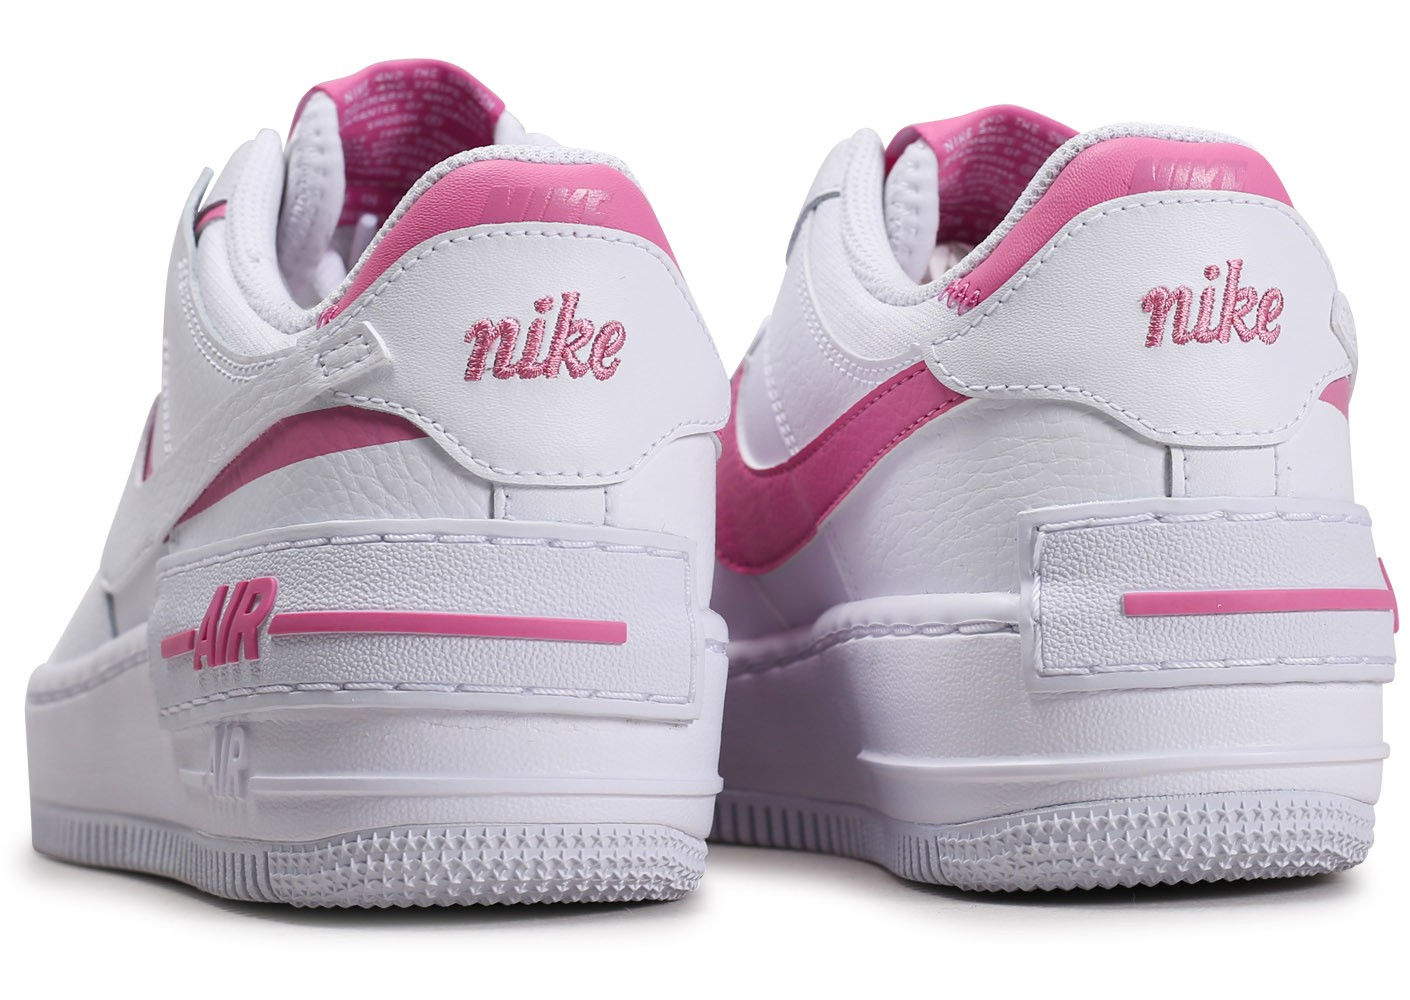 Nike Air Force 1 Shadow blanc rose Femme - Chaussures Baskets ...